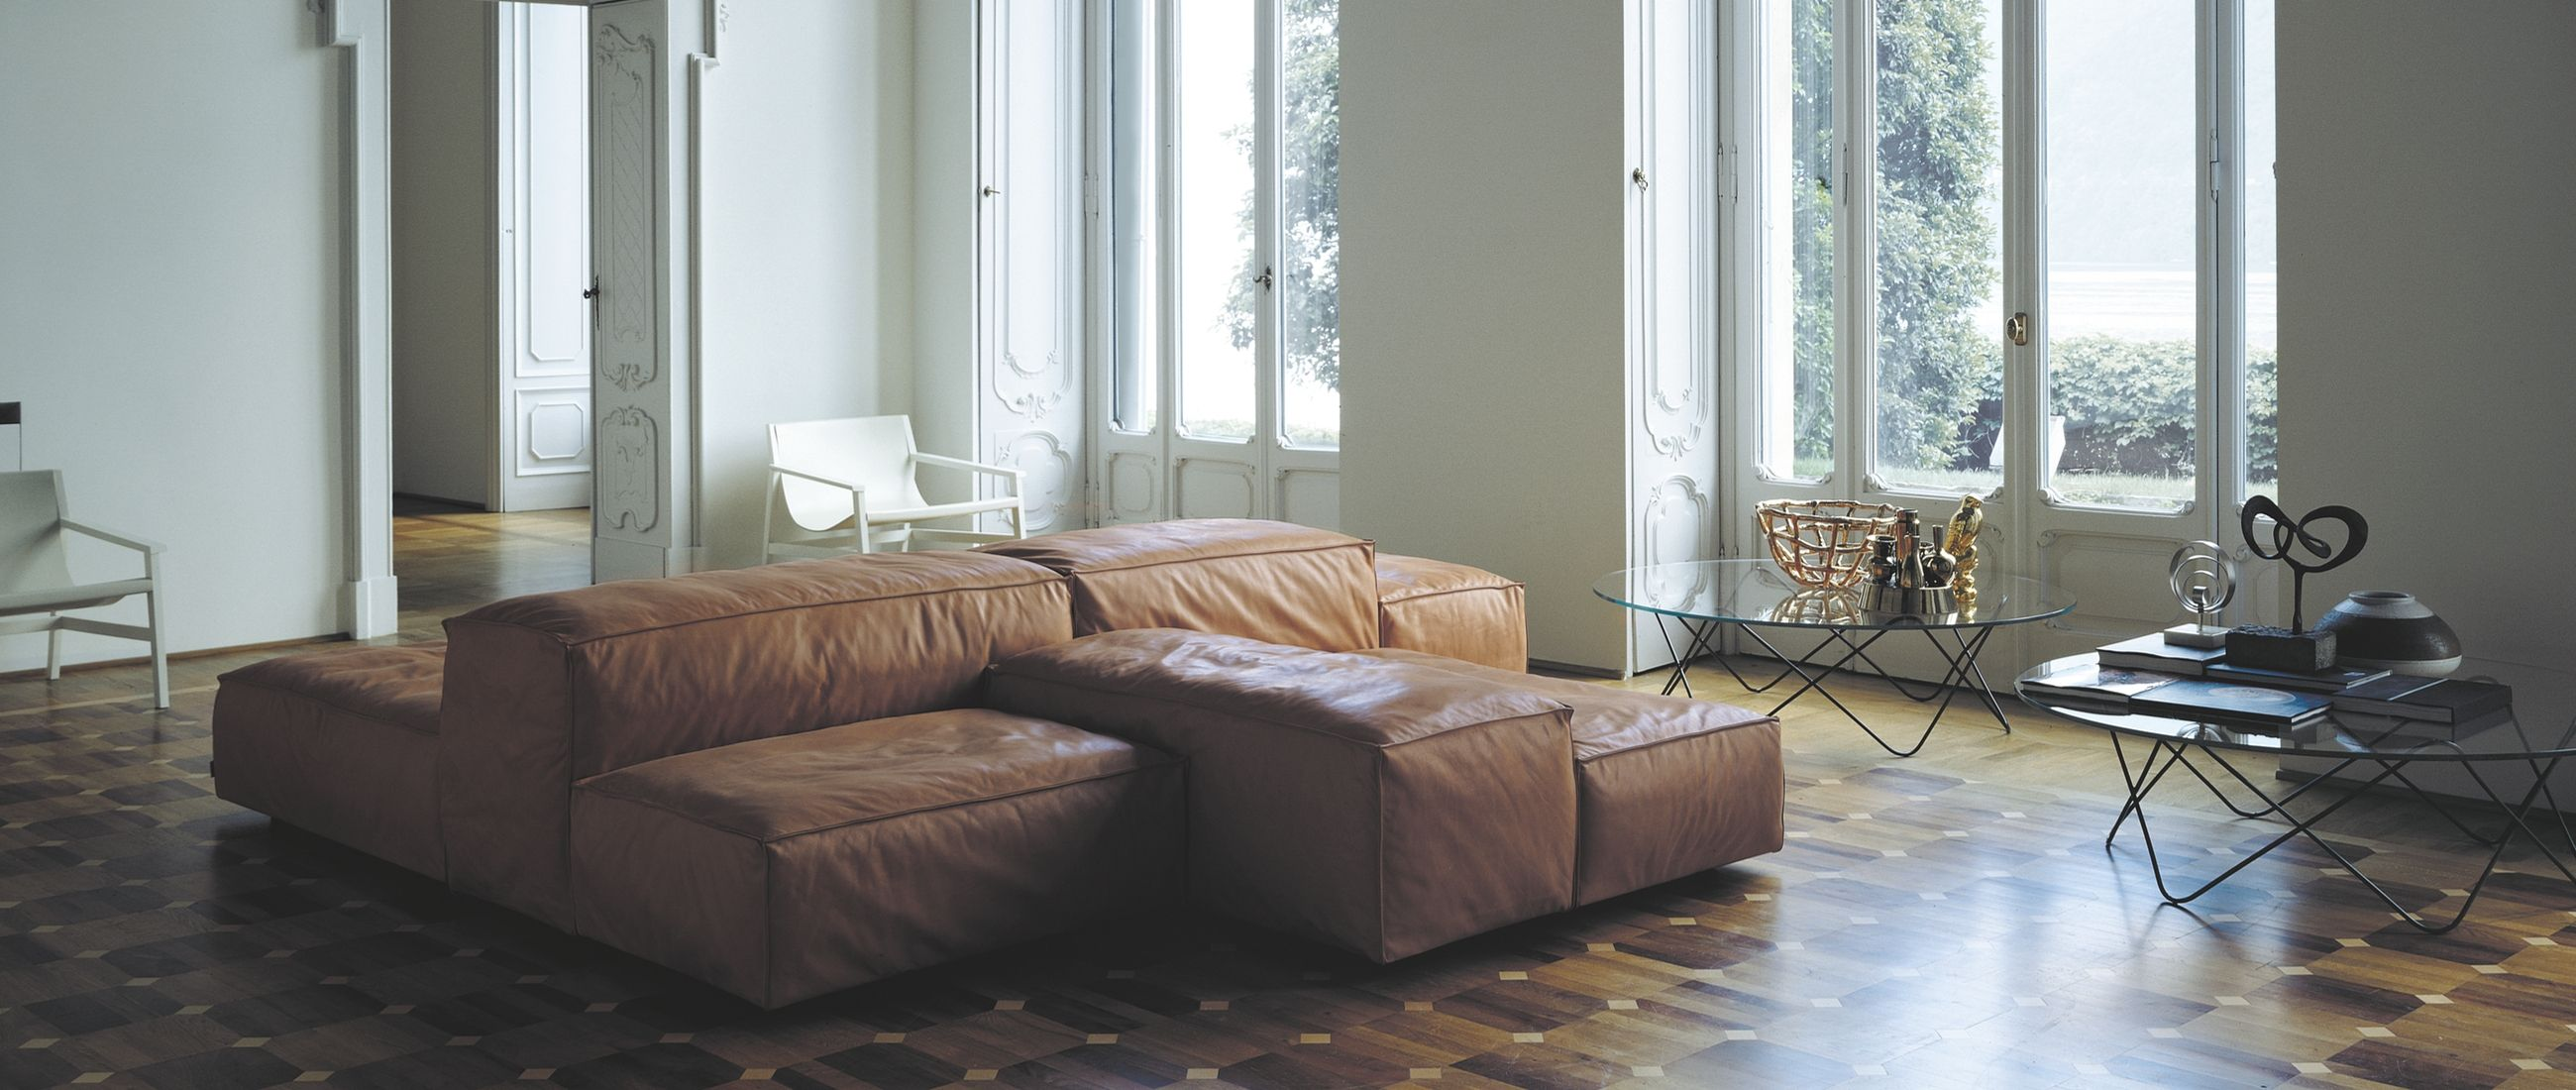 Living Divani Neowall Sofa Bed Image Result For Living Divani Neowall Sofa Orin Ct